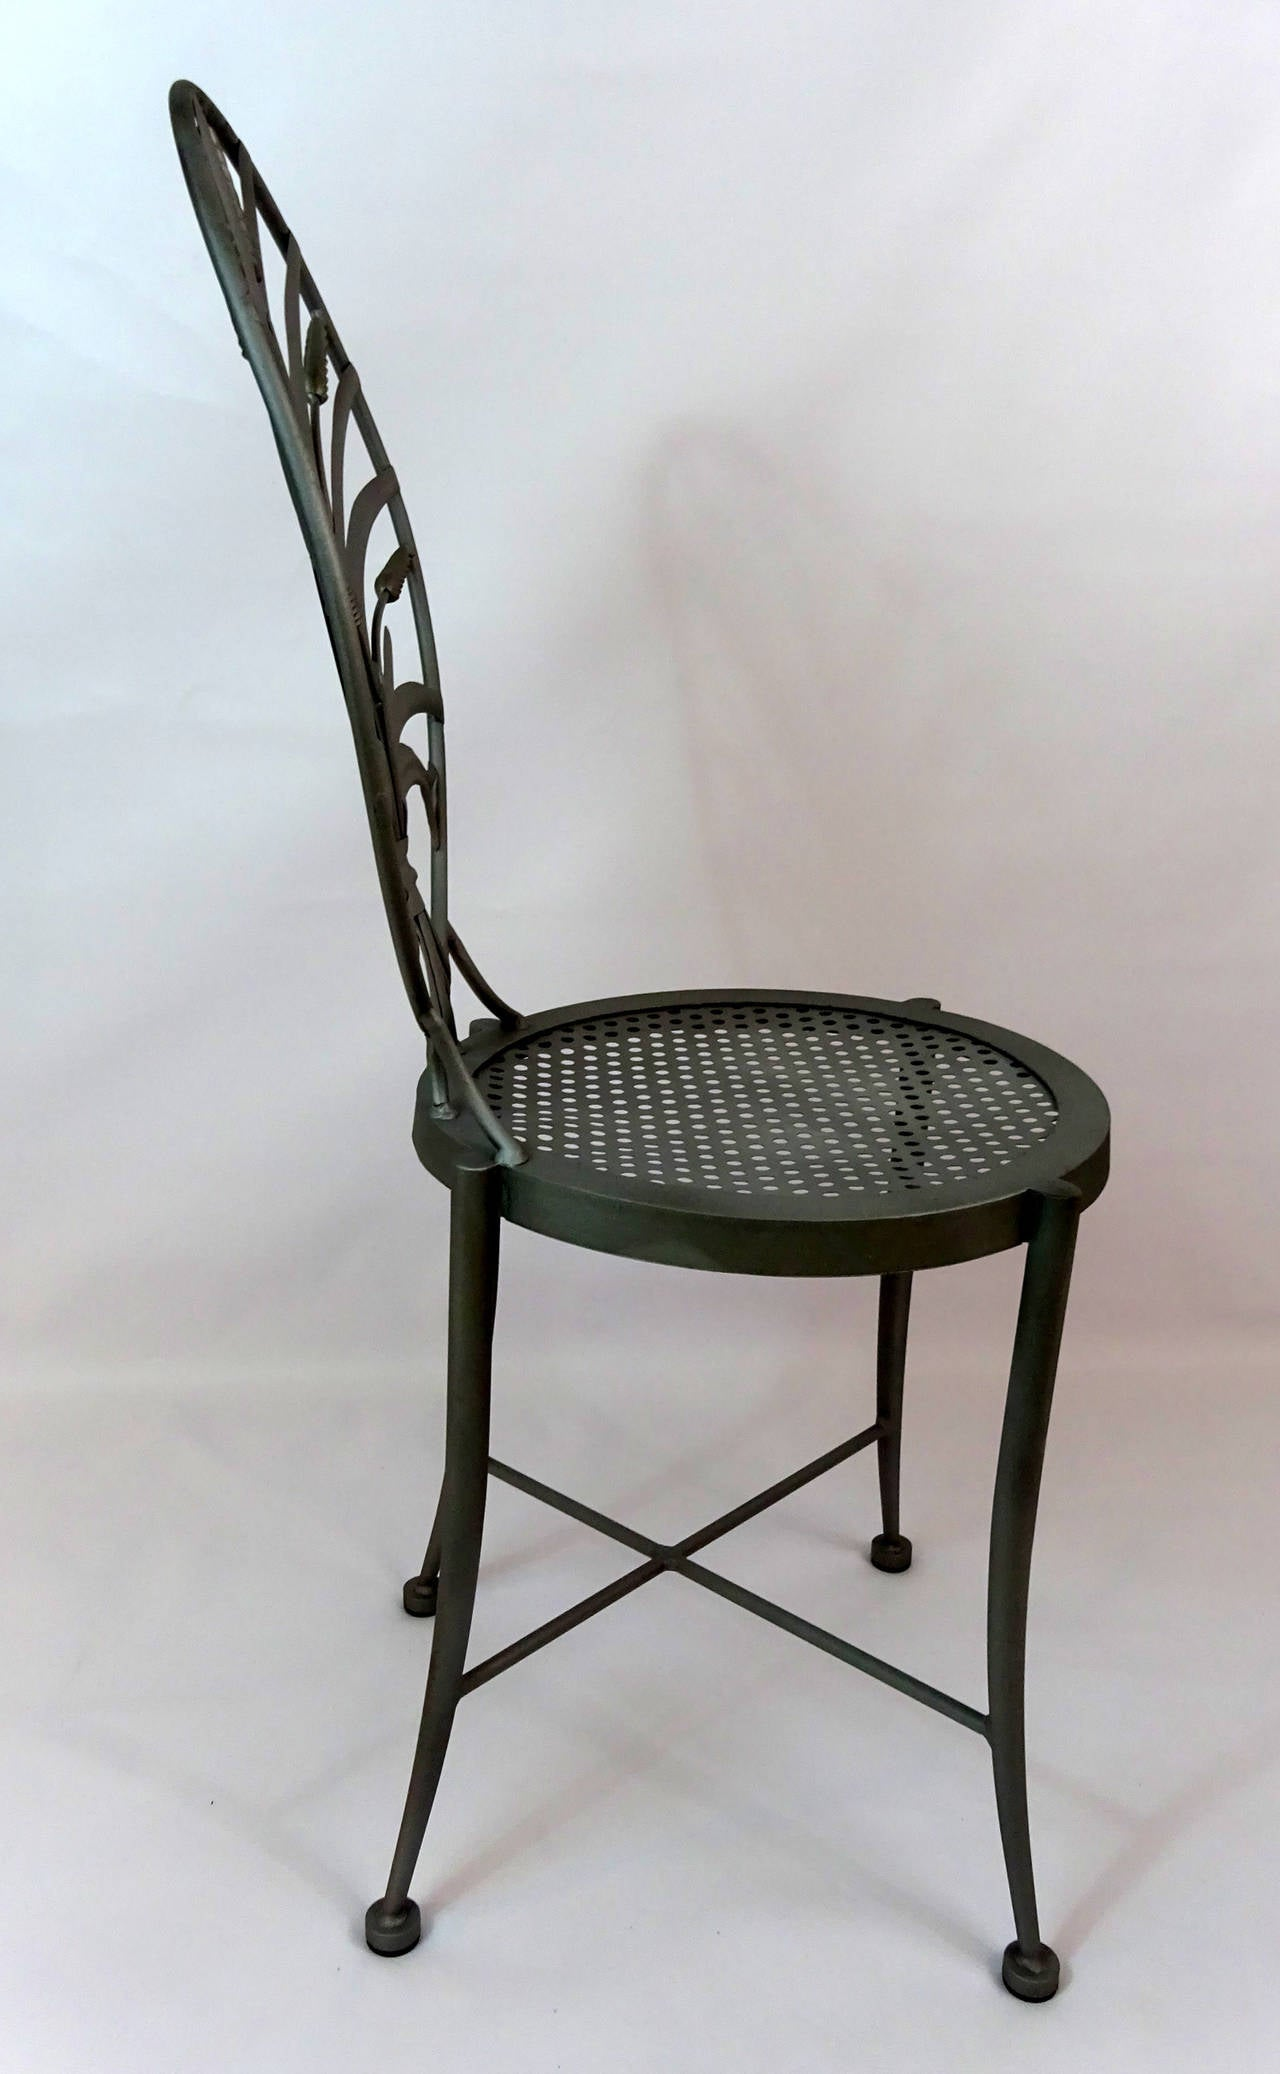 mid century modern metal side chair circa 1950 for sale at 1stdibs. Black Bedroom Furniture Sets. Home Design Ideas